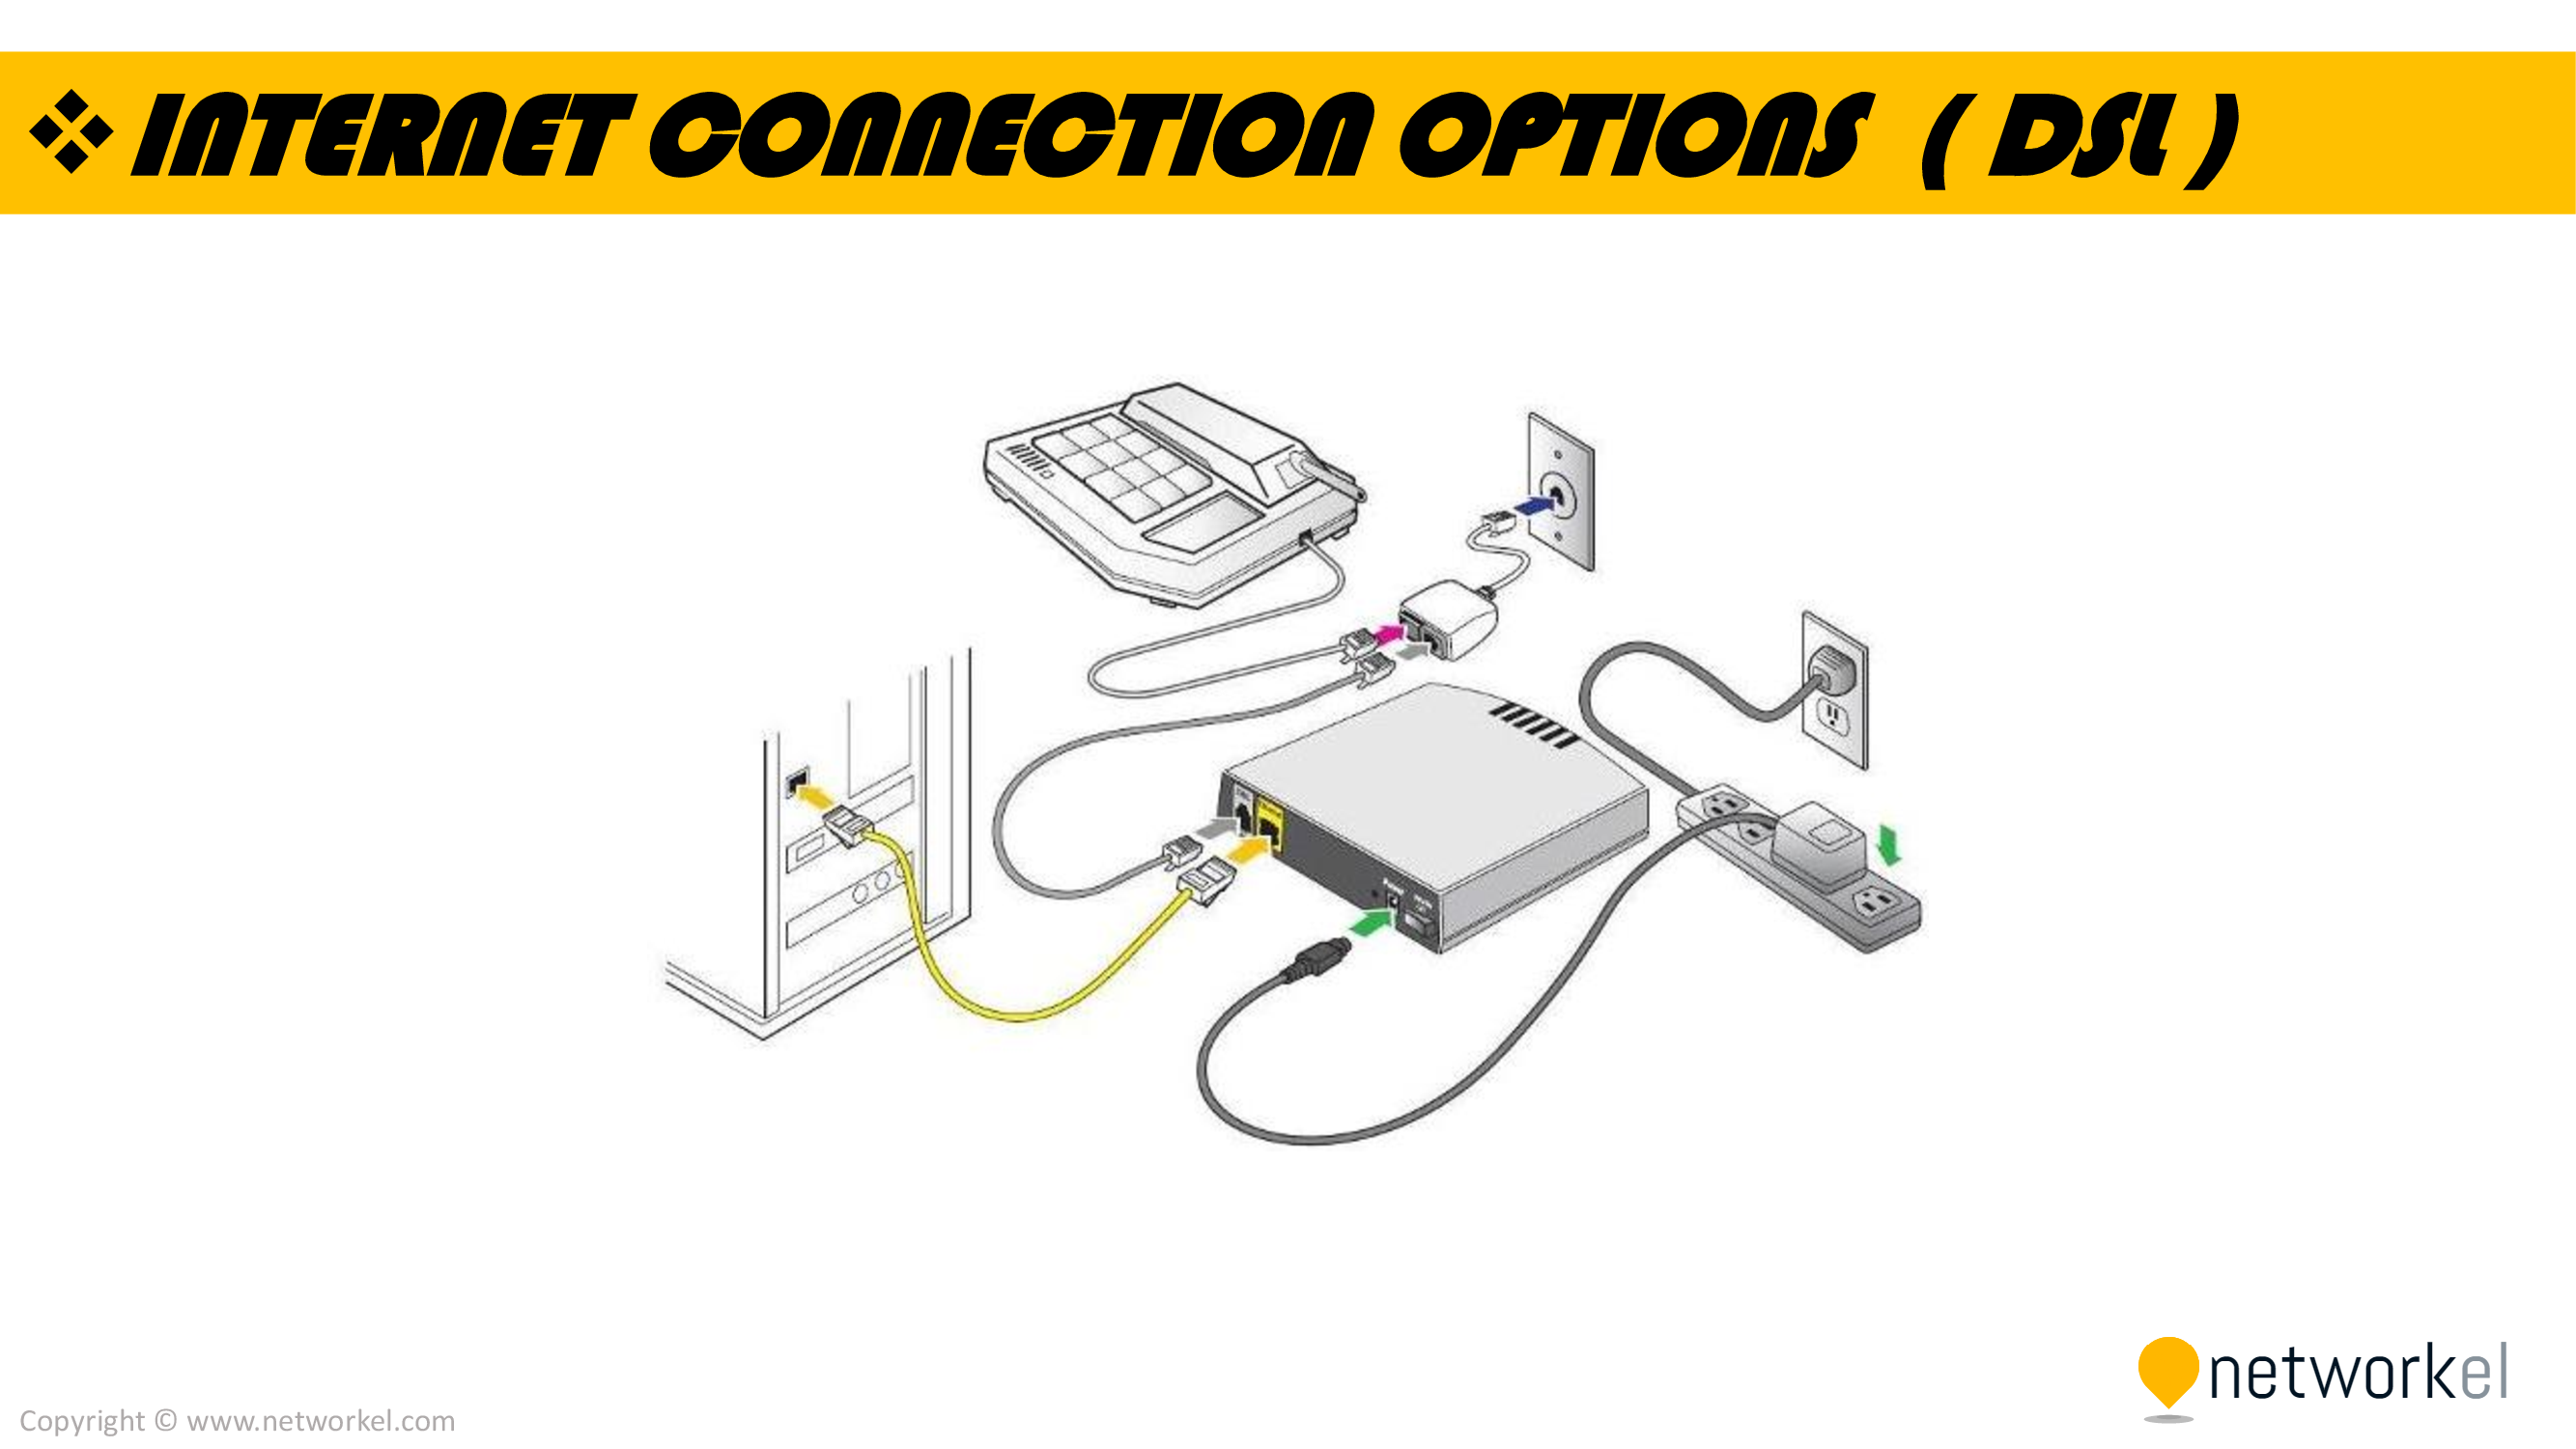 small resolution of internet connection options dsl connection internet